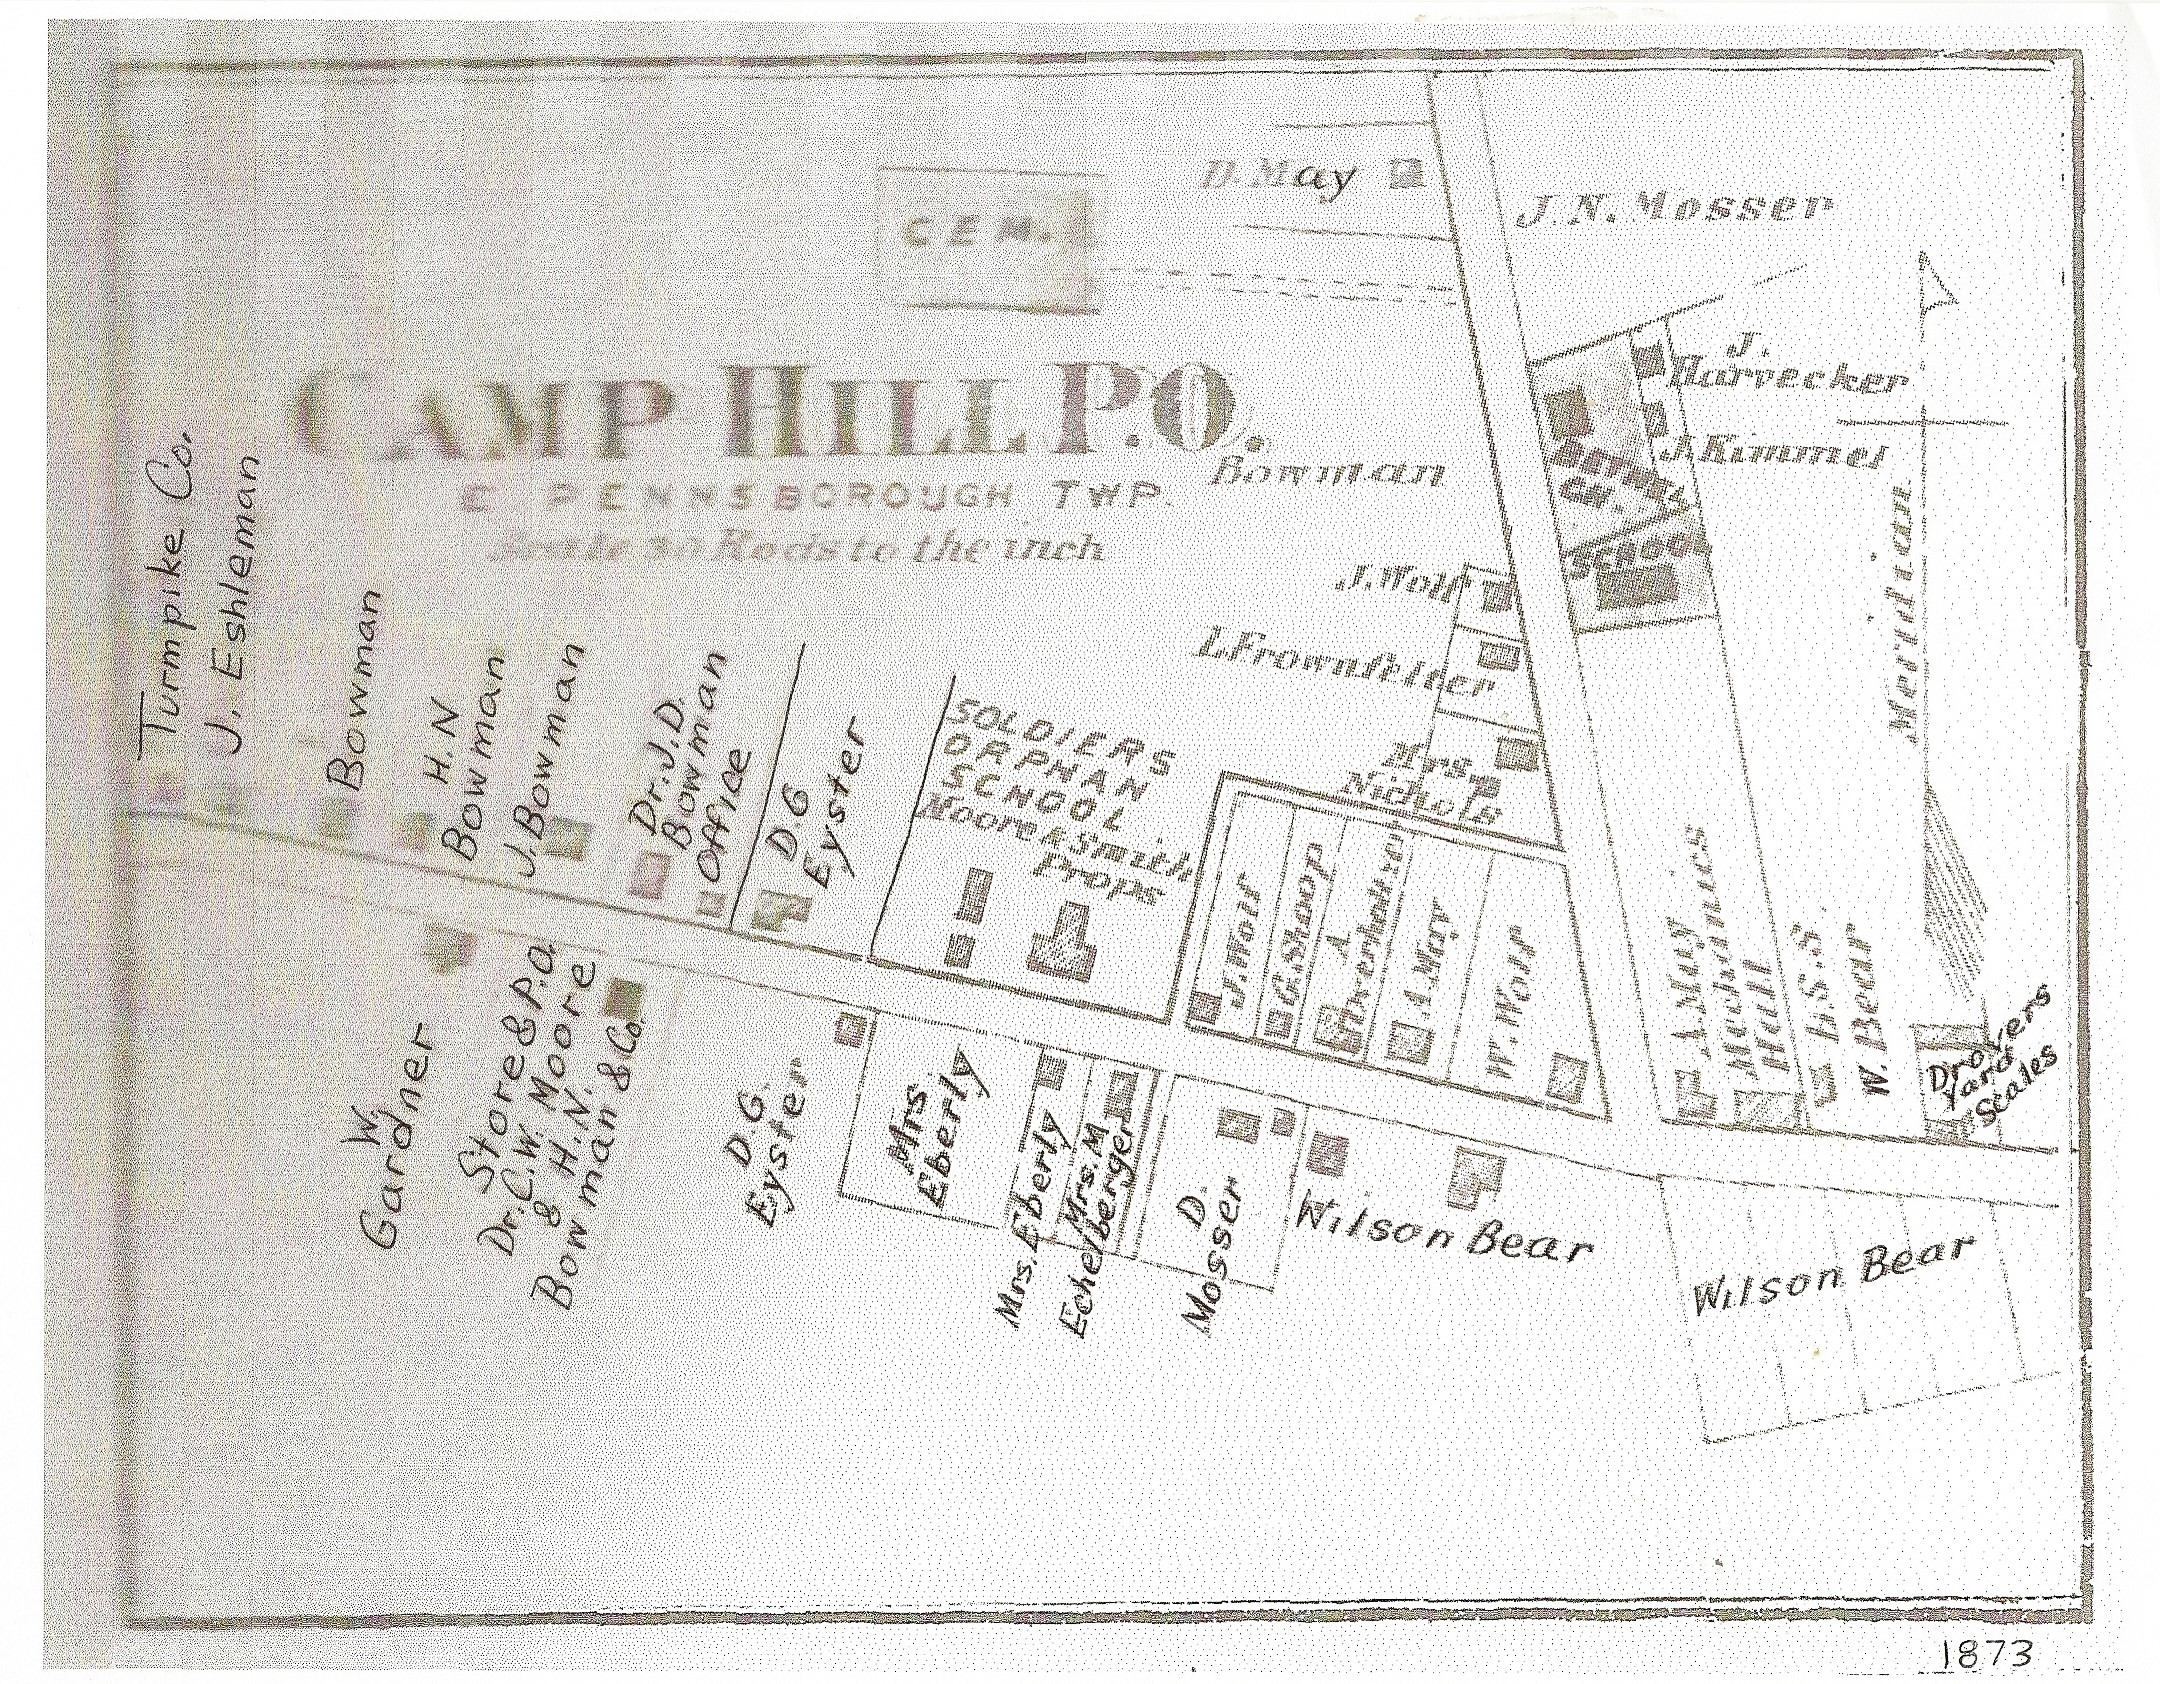 Image:CAMP HILL MAP.jpg